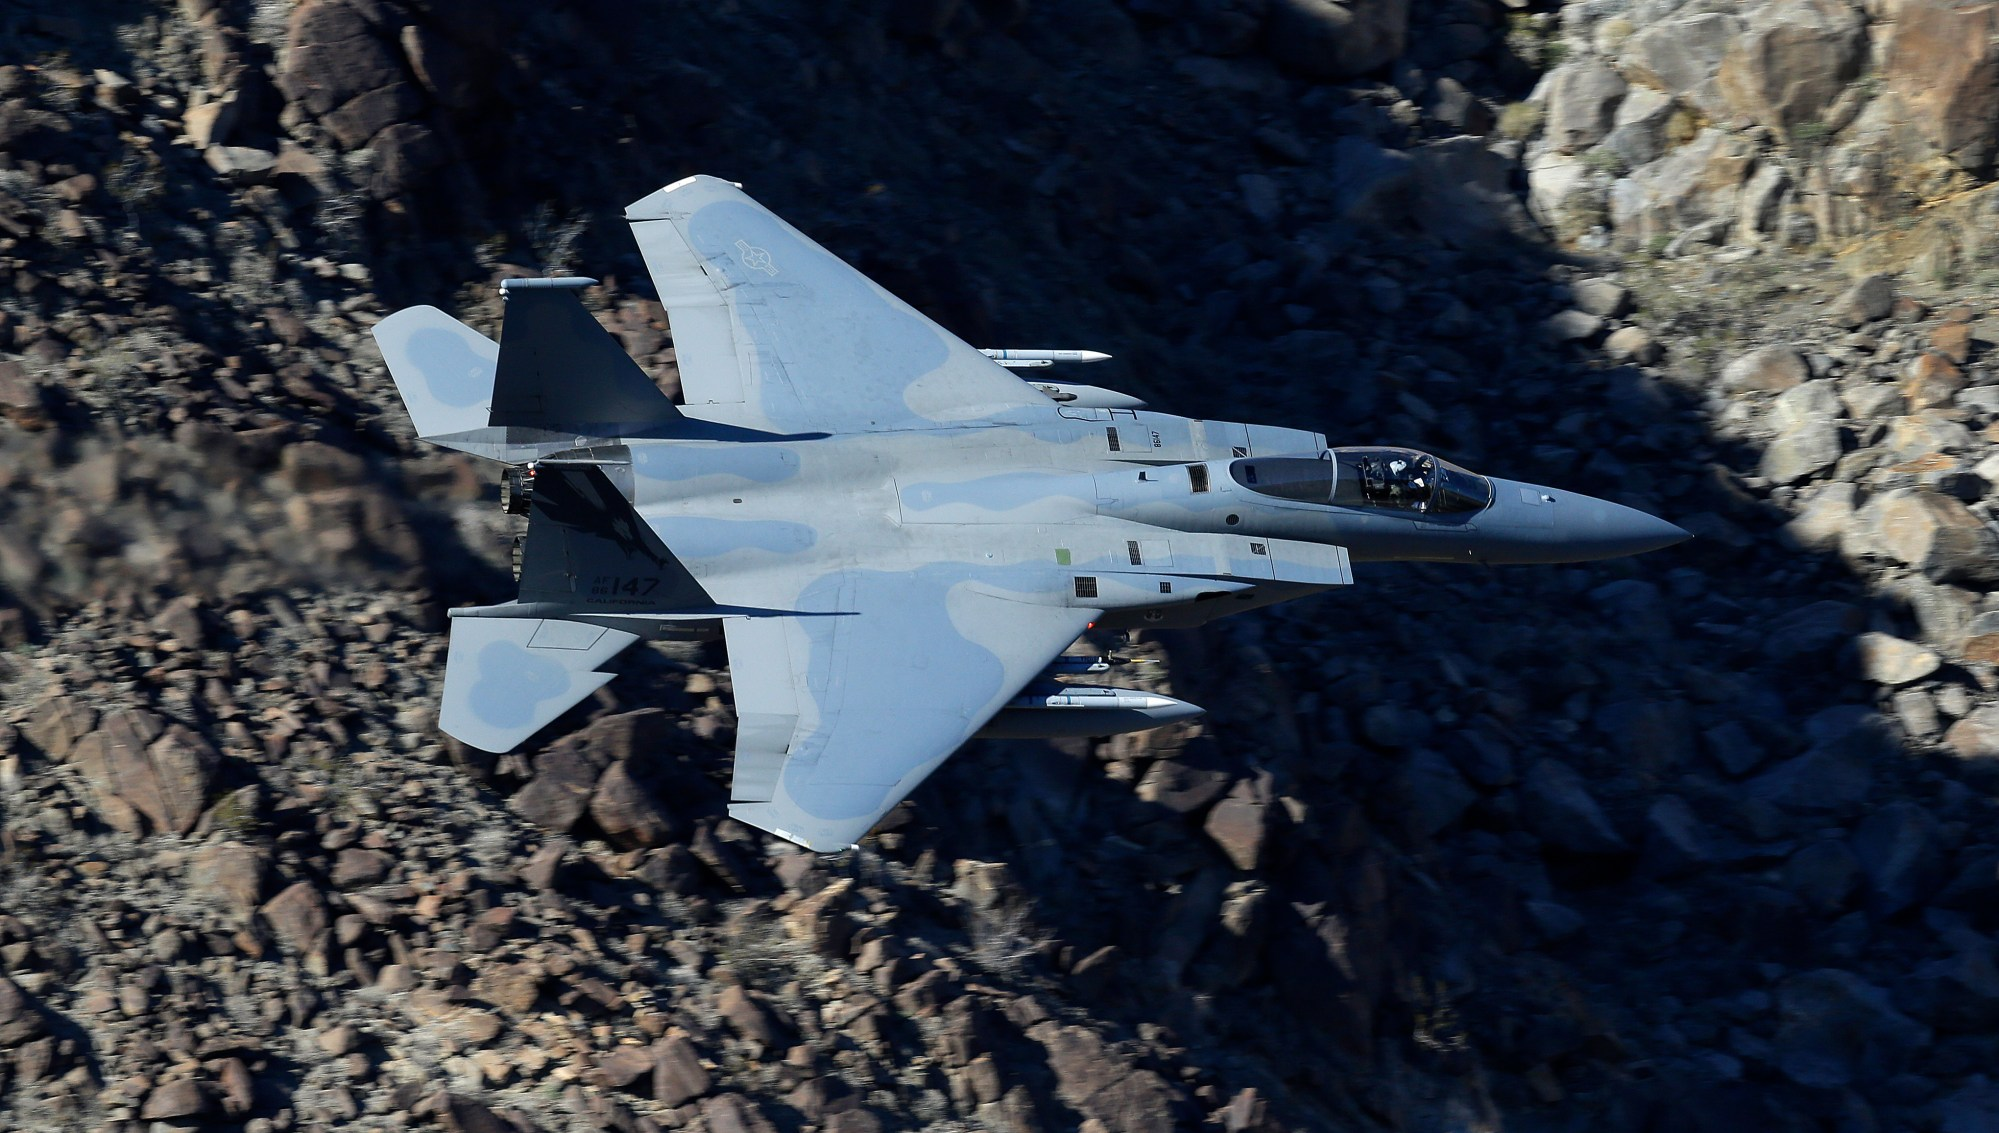 In this Feb. 28, 2017, photo, an F-15C Eagle from the California Air National Guard, 144th Fighter Wing, flies through the nicknamed Star Wars Canyon over Death Valley National Park, Calif. Sources told the L.A. Times that deploying an F-15C, an air-to-air combat jet based at the Guard's 144th Fighter Wing in Fresno, to frighten demonstrators in this country would have been an inappropriate use of the military against U.S. civilians. (AP Photo/Ben Margot)